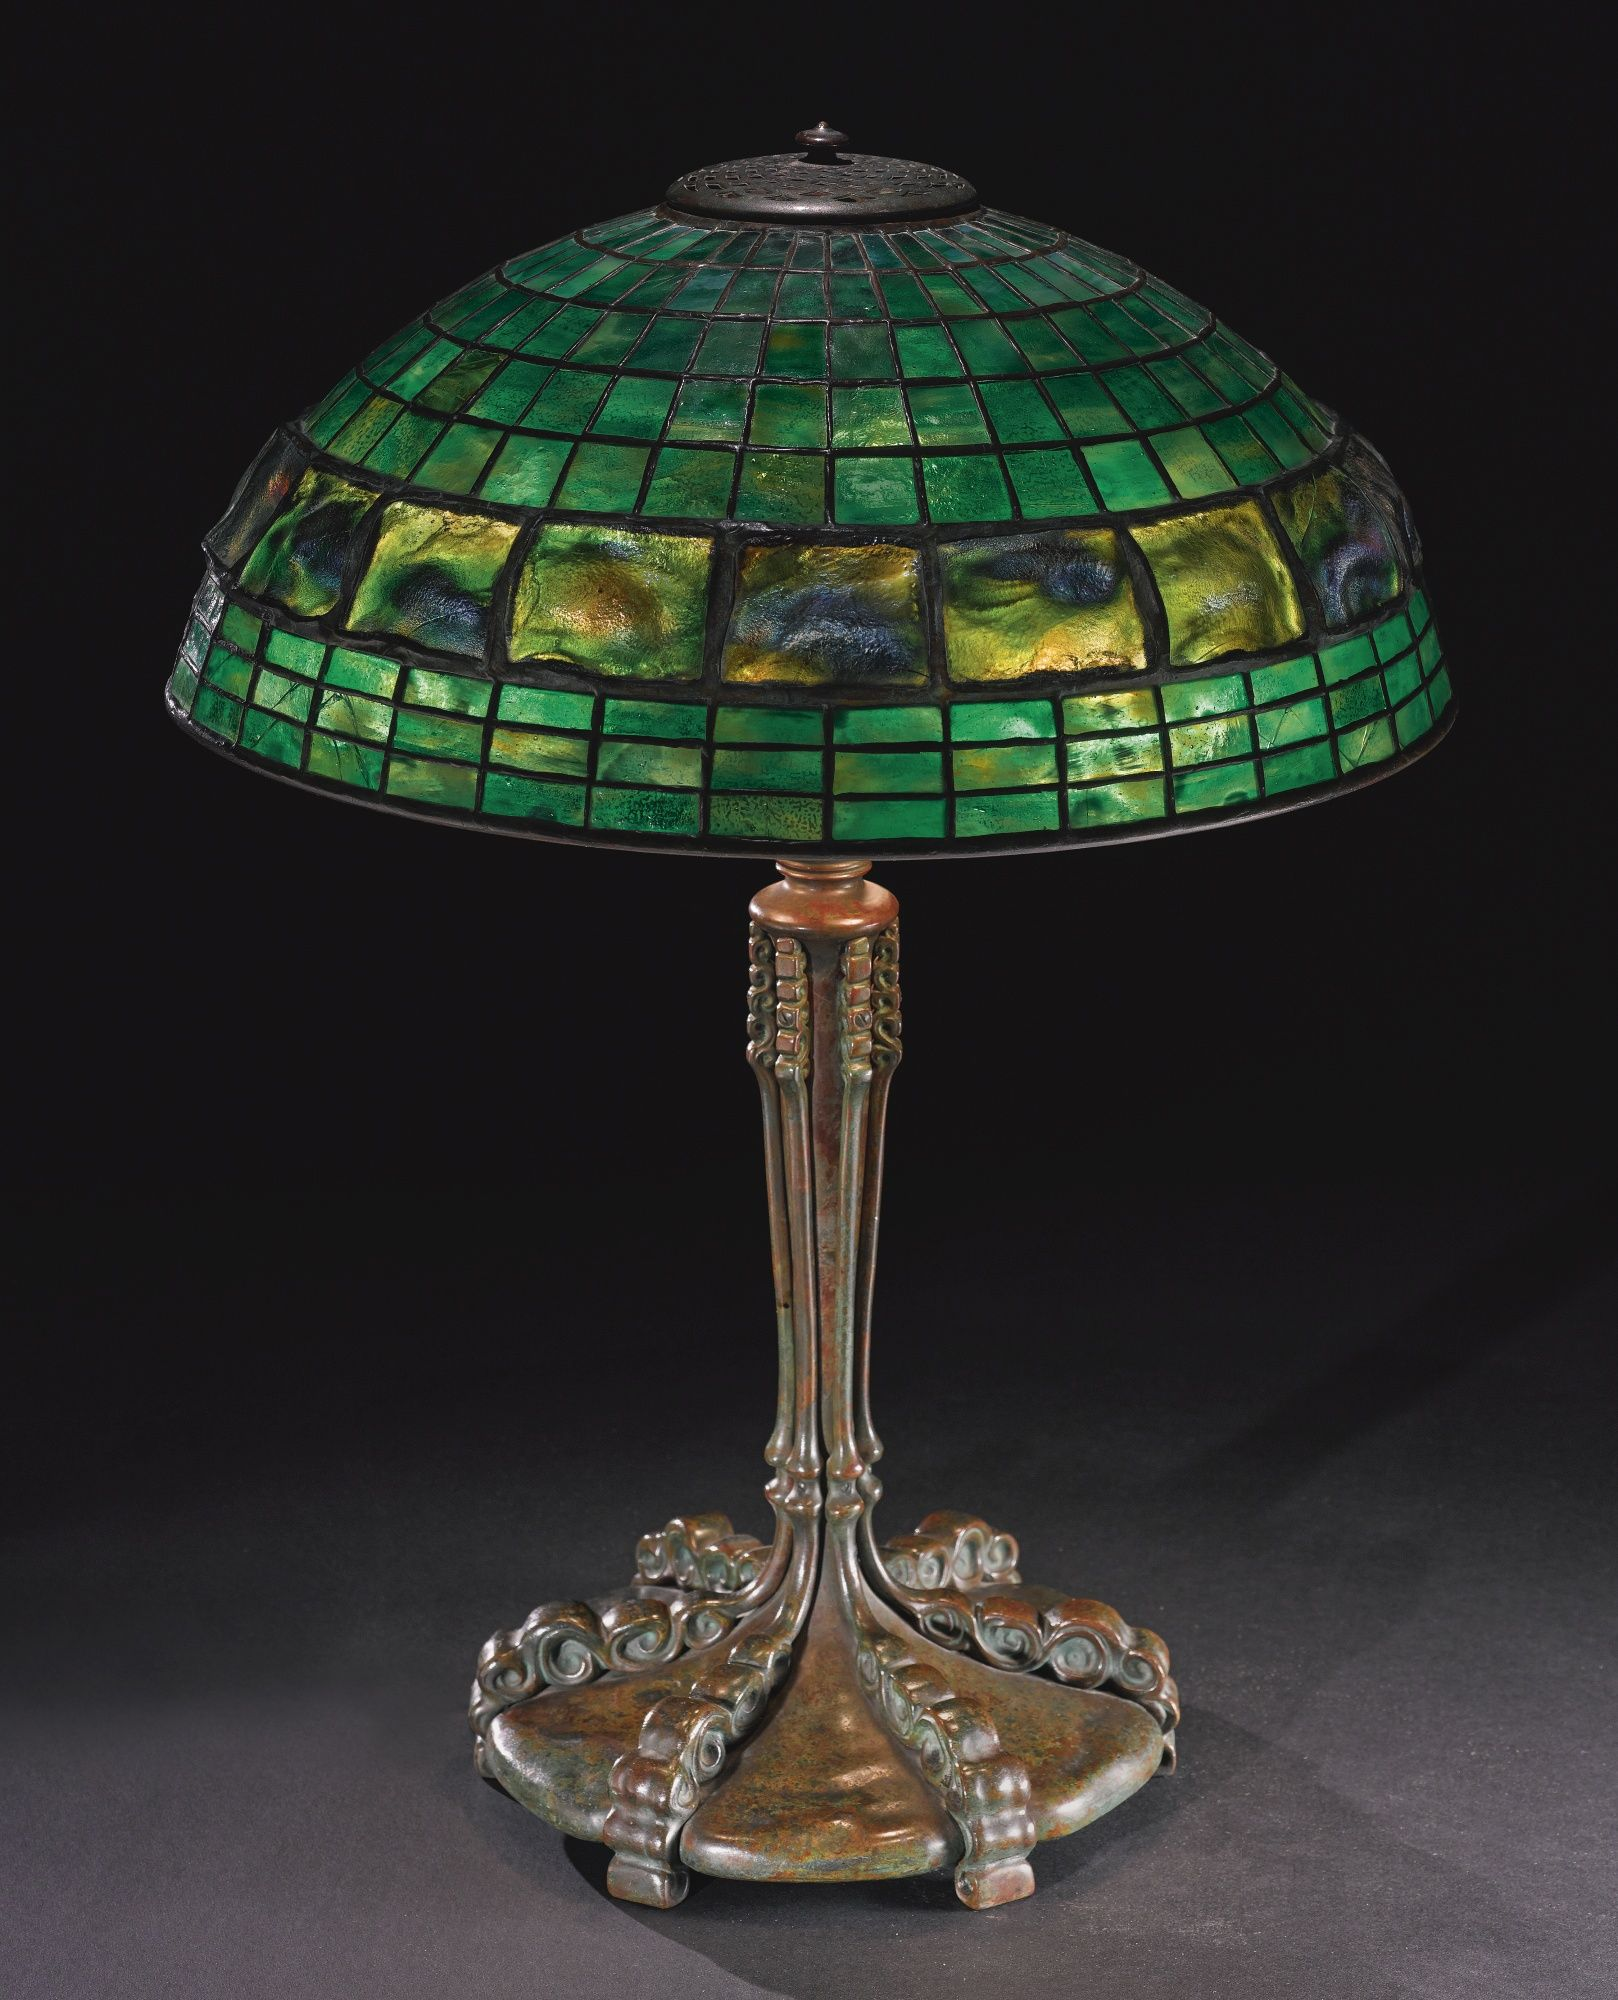 Antique tiffany table lamps - Tiffany Studios New York Turtle Back Leaded Glass And Patinated Bronze Table